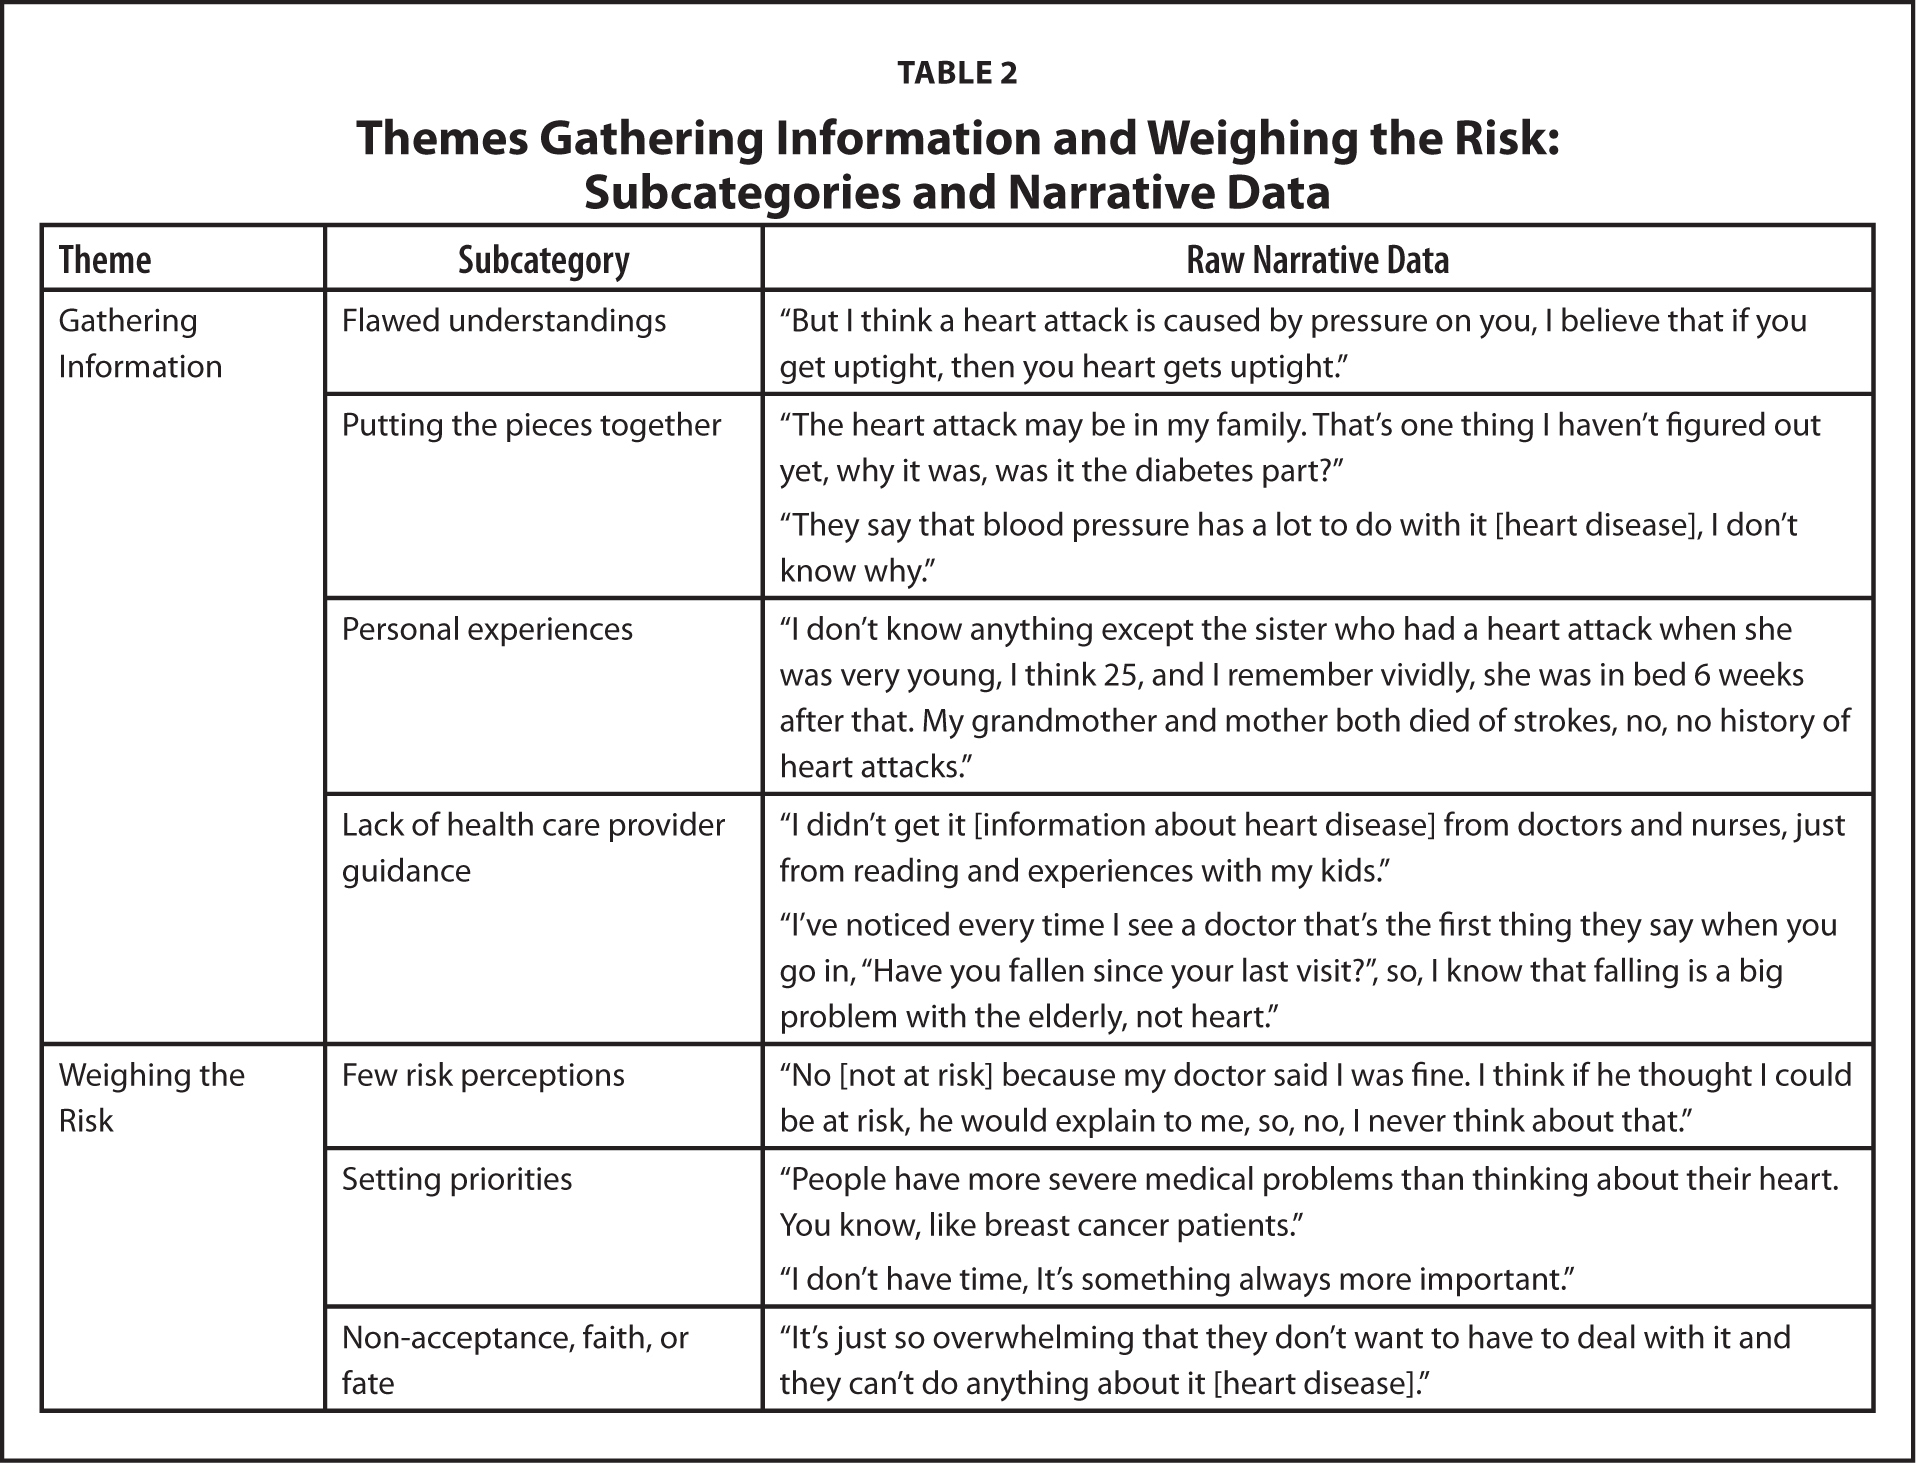 Themes Gathering Information and Weighing the Risk: Subcategories and Narrative Data